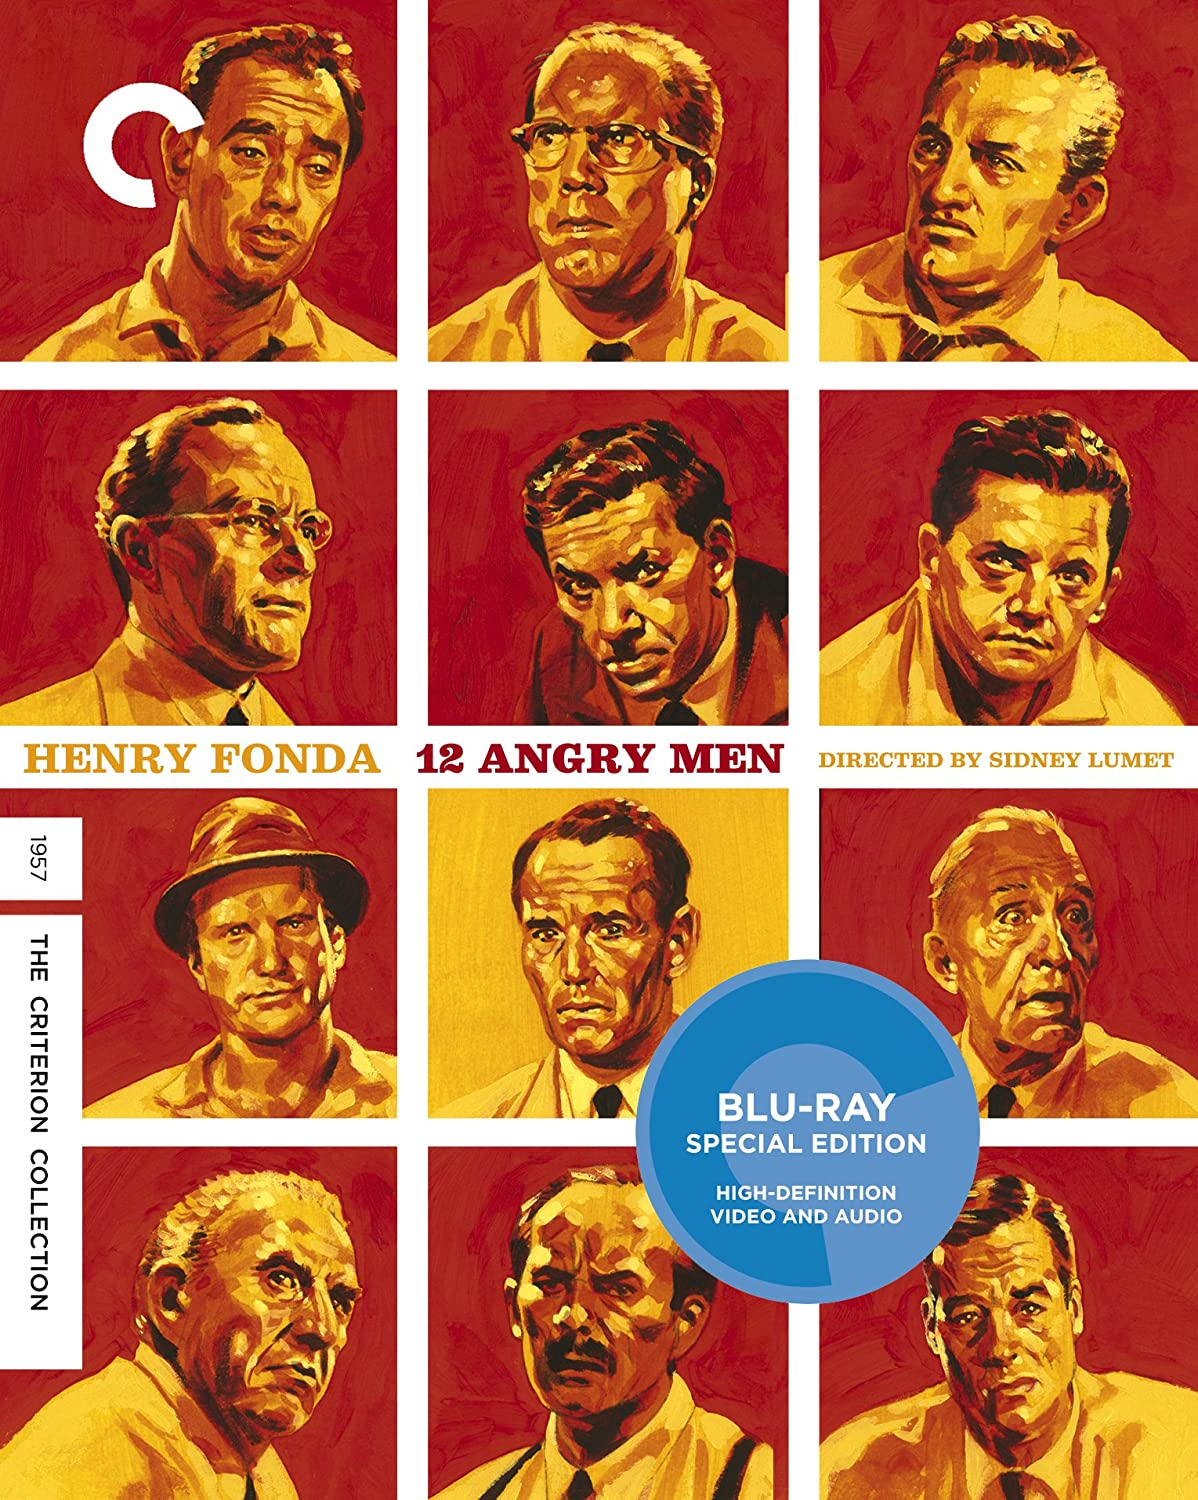 com 12 angry men the criterion collection blu ray ed  com 12 angry men the criterion collection blu ray ed begley henry fonda jack warden jack klugman e g marshall lee j cobb sidney lumet